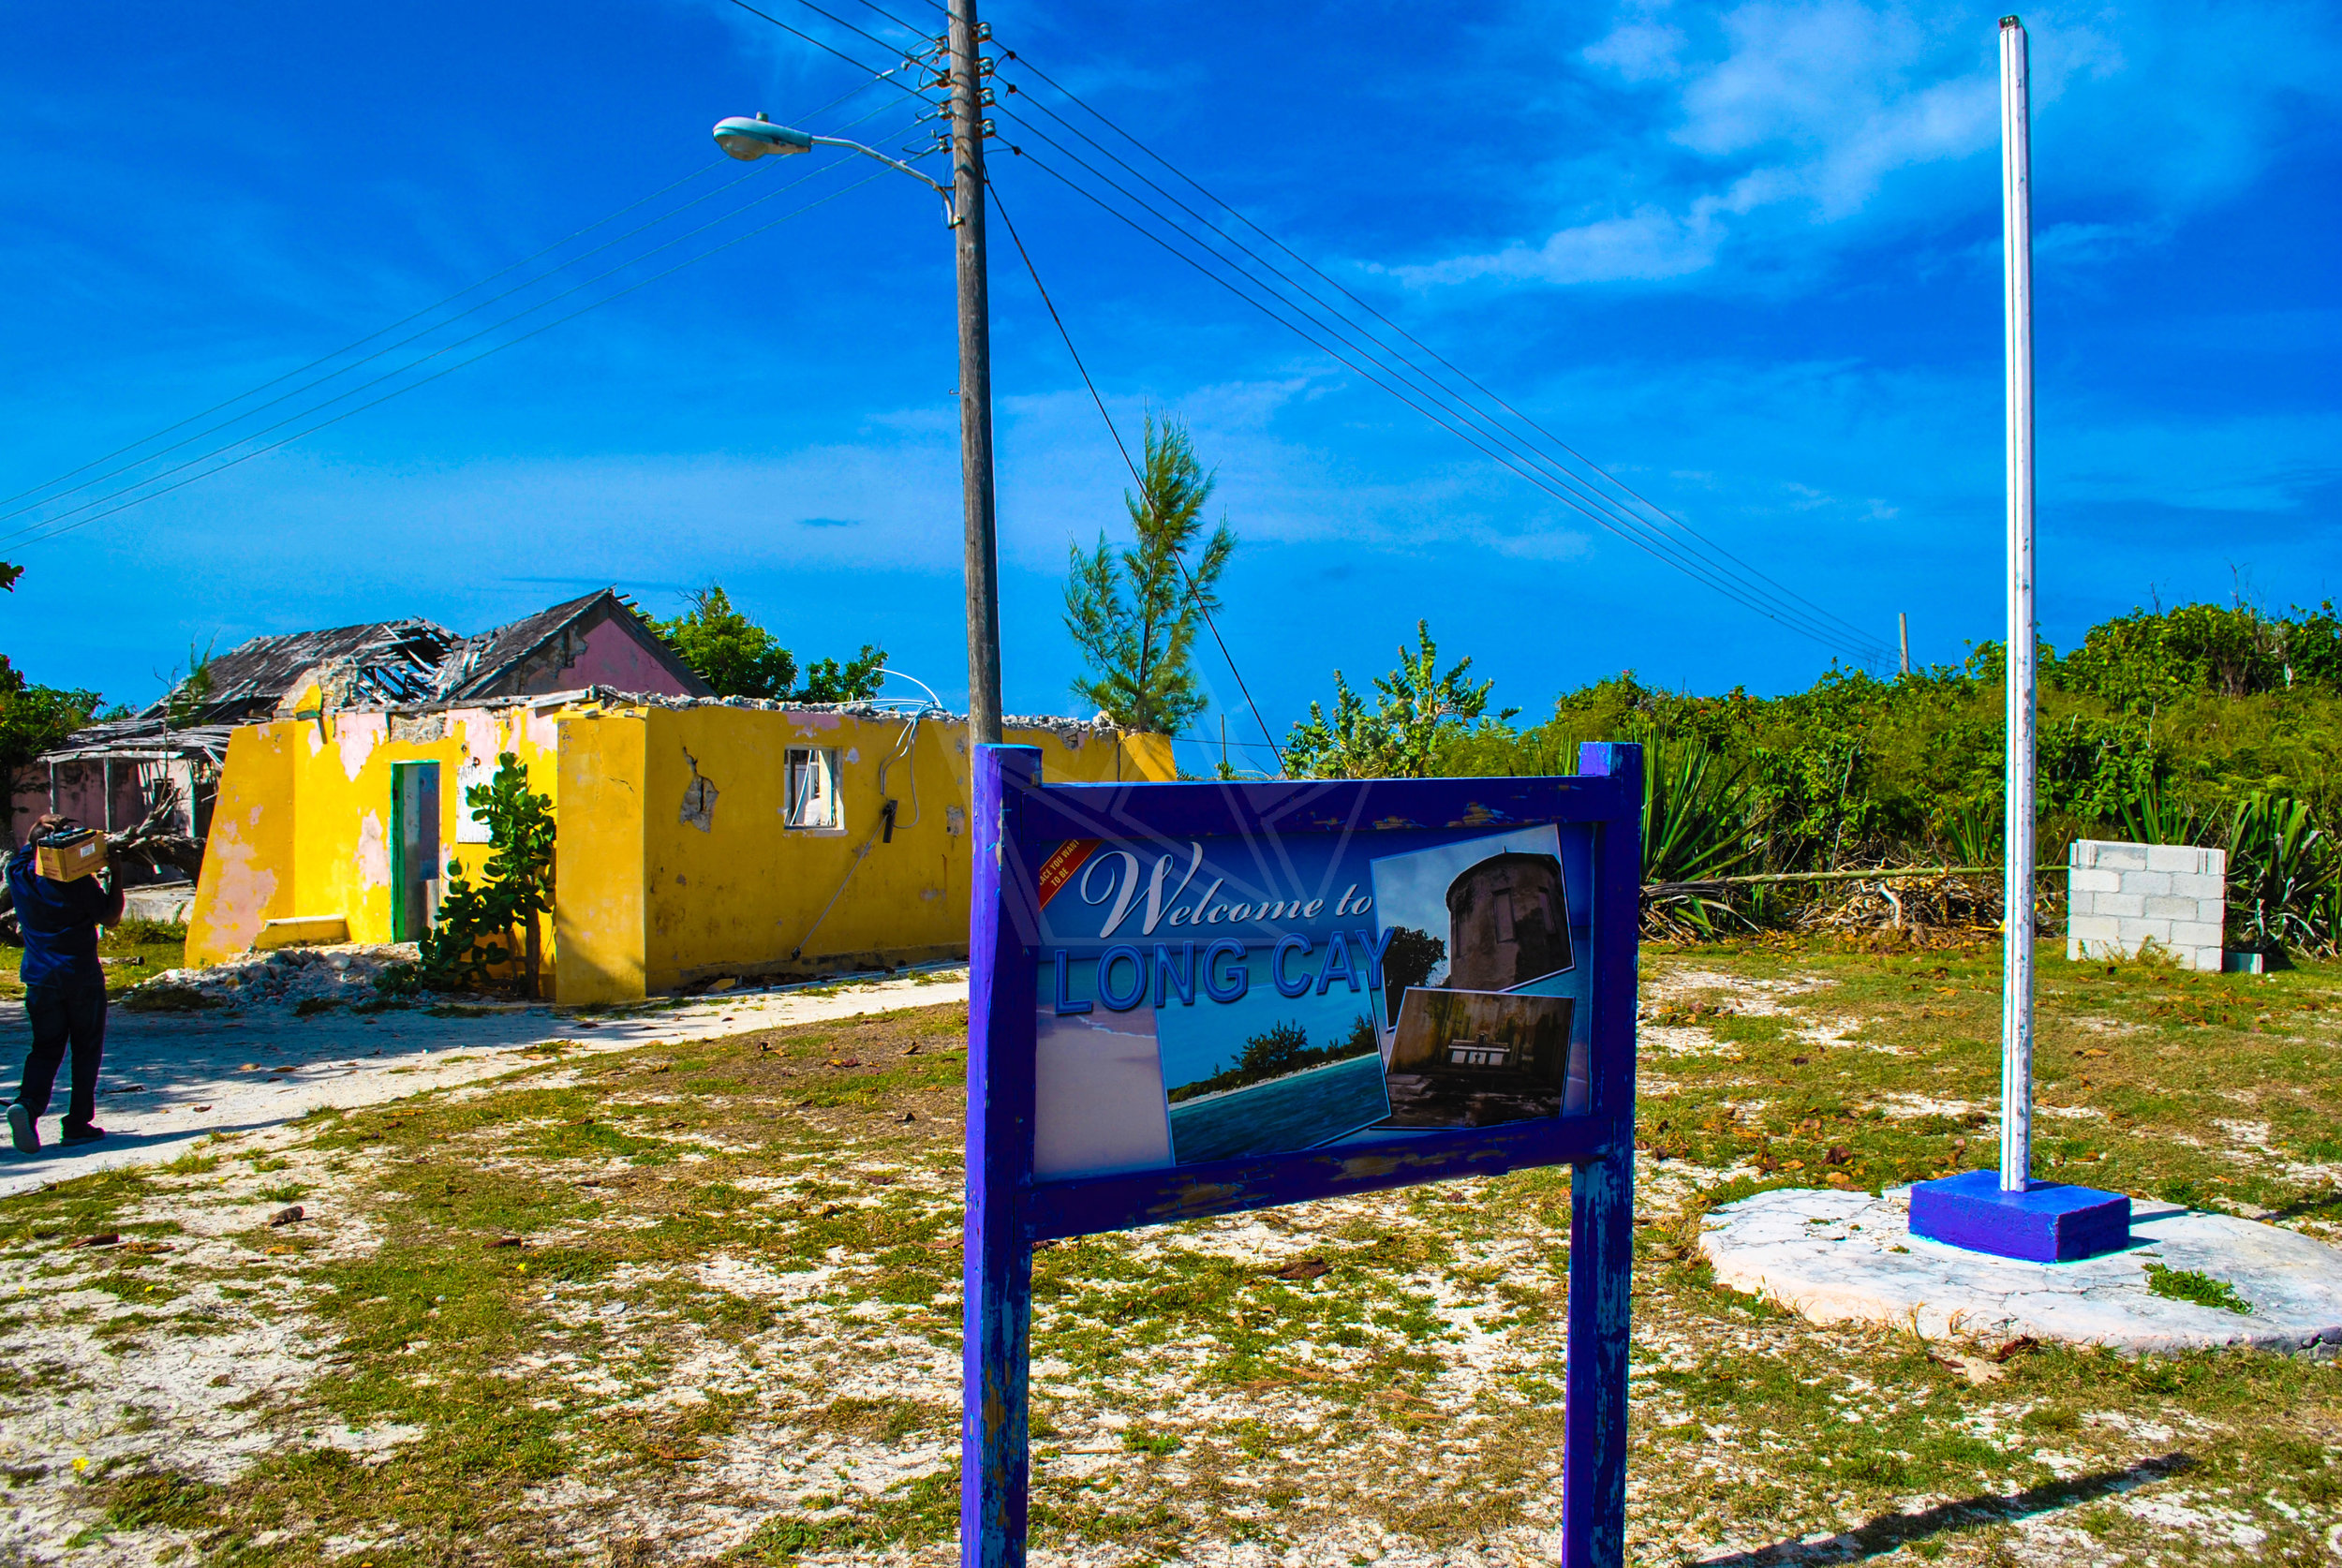 Long Cay Welcome Sign